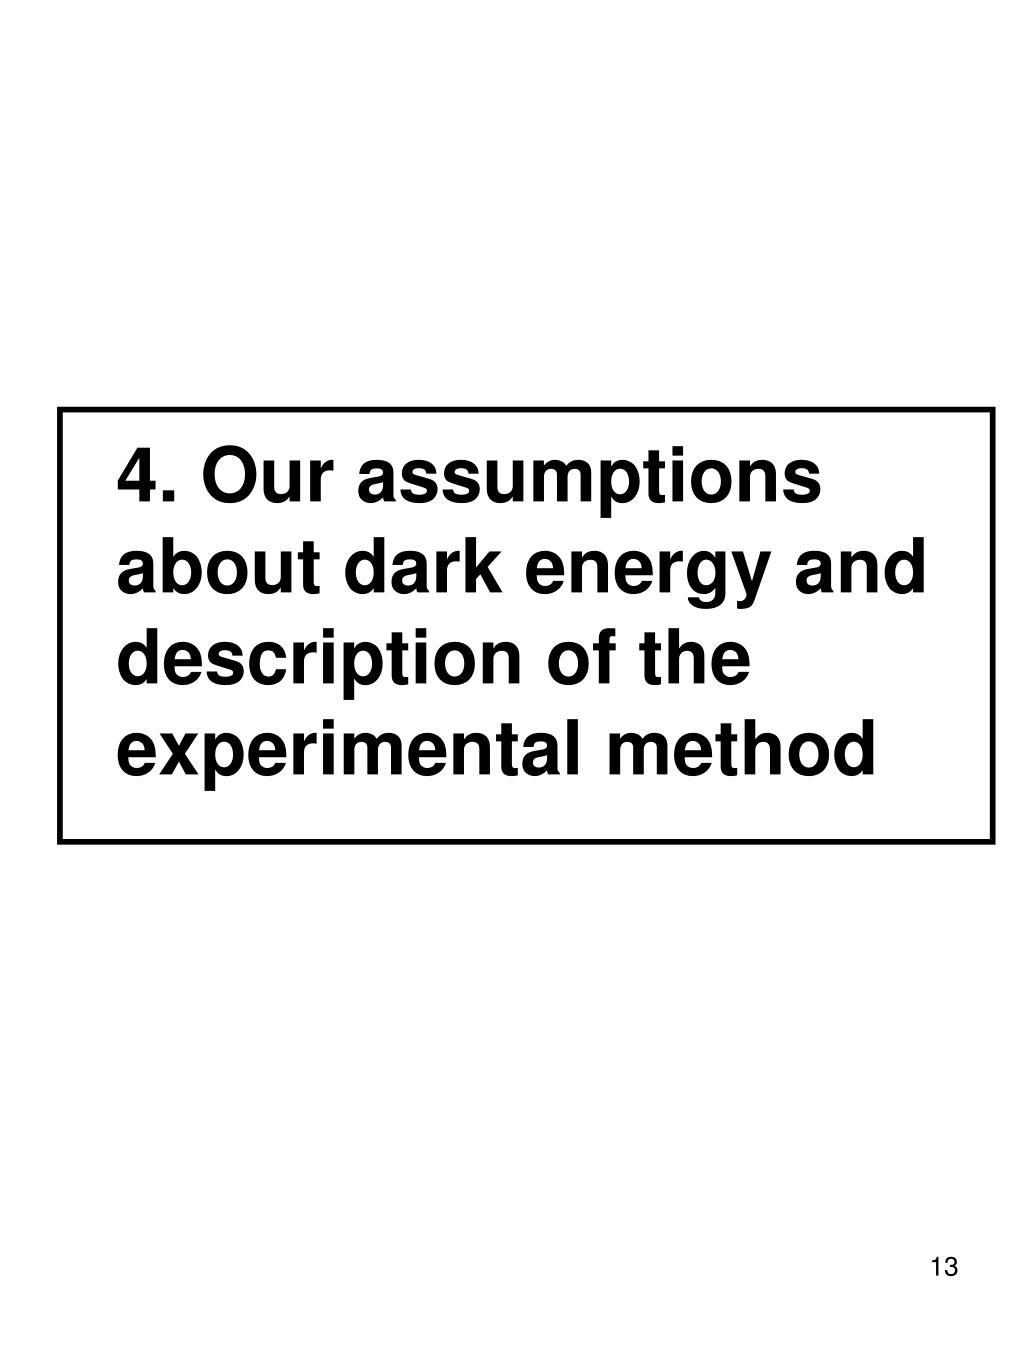 4. Our assumptions about dark energy and description of the